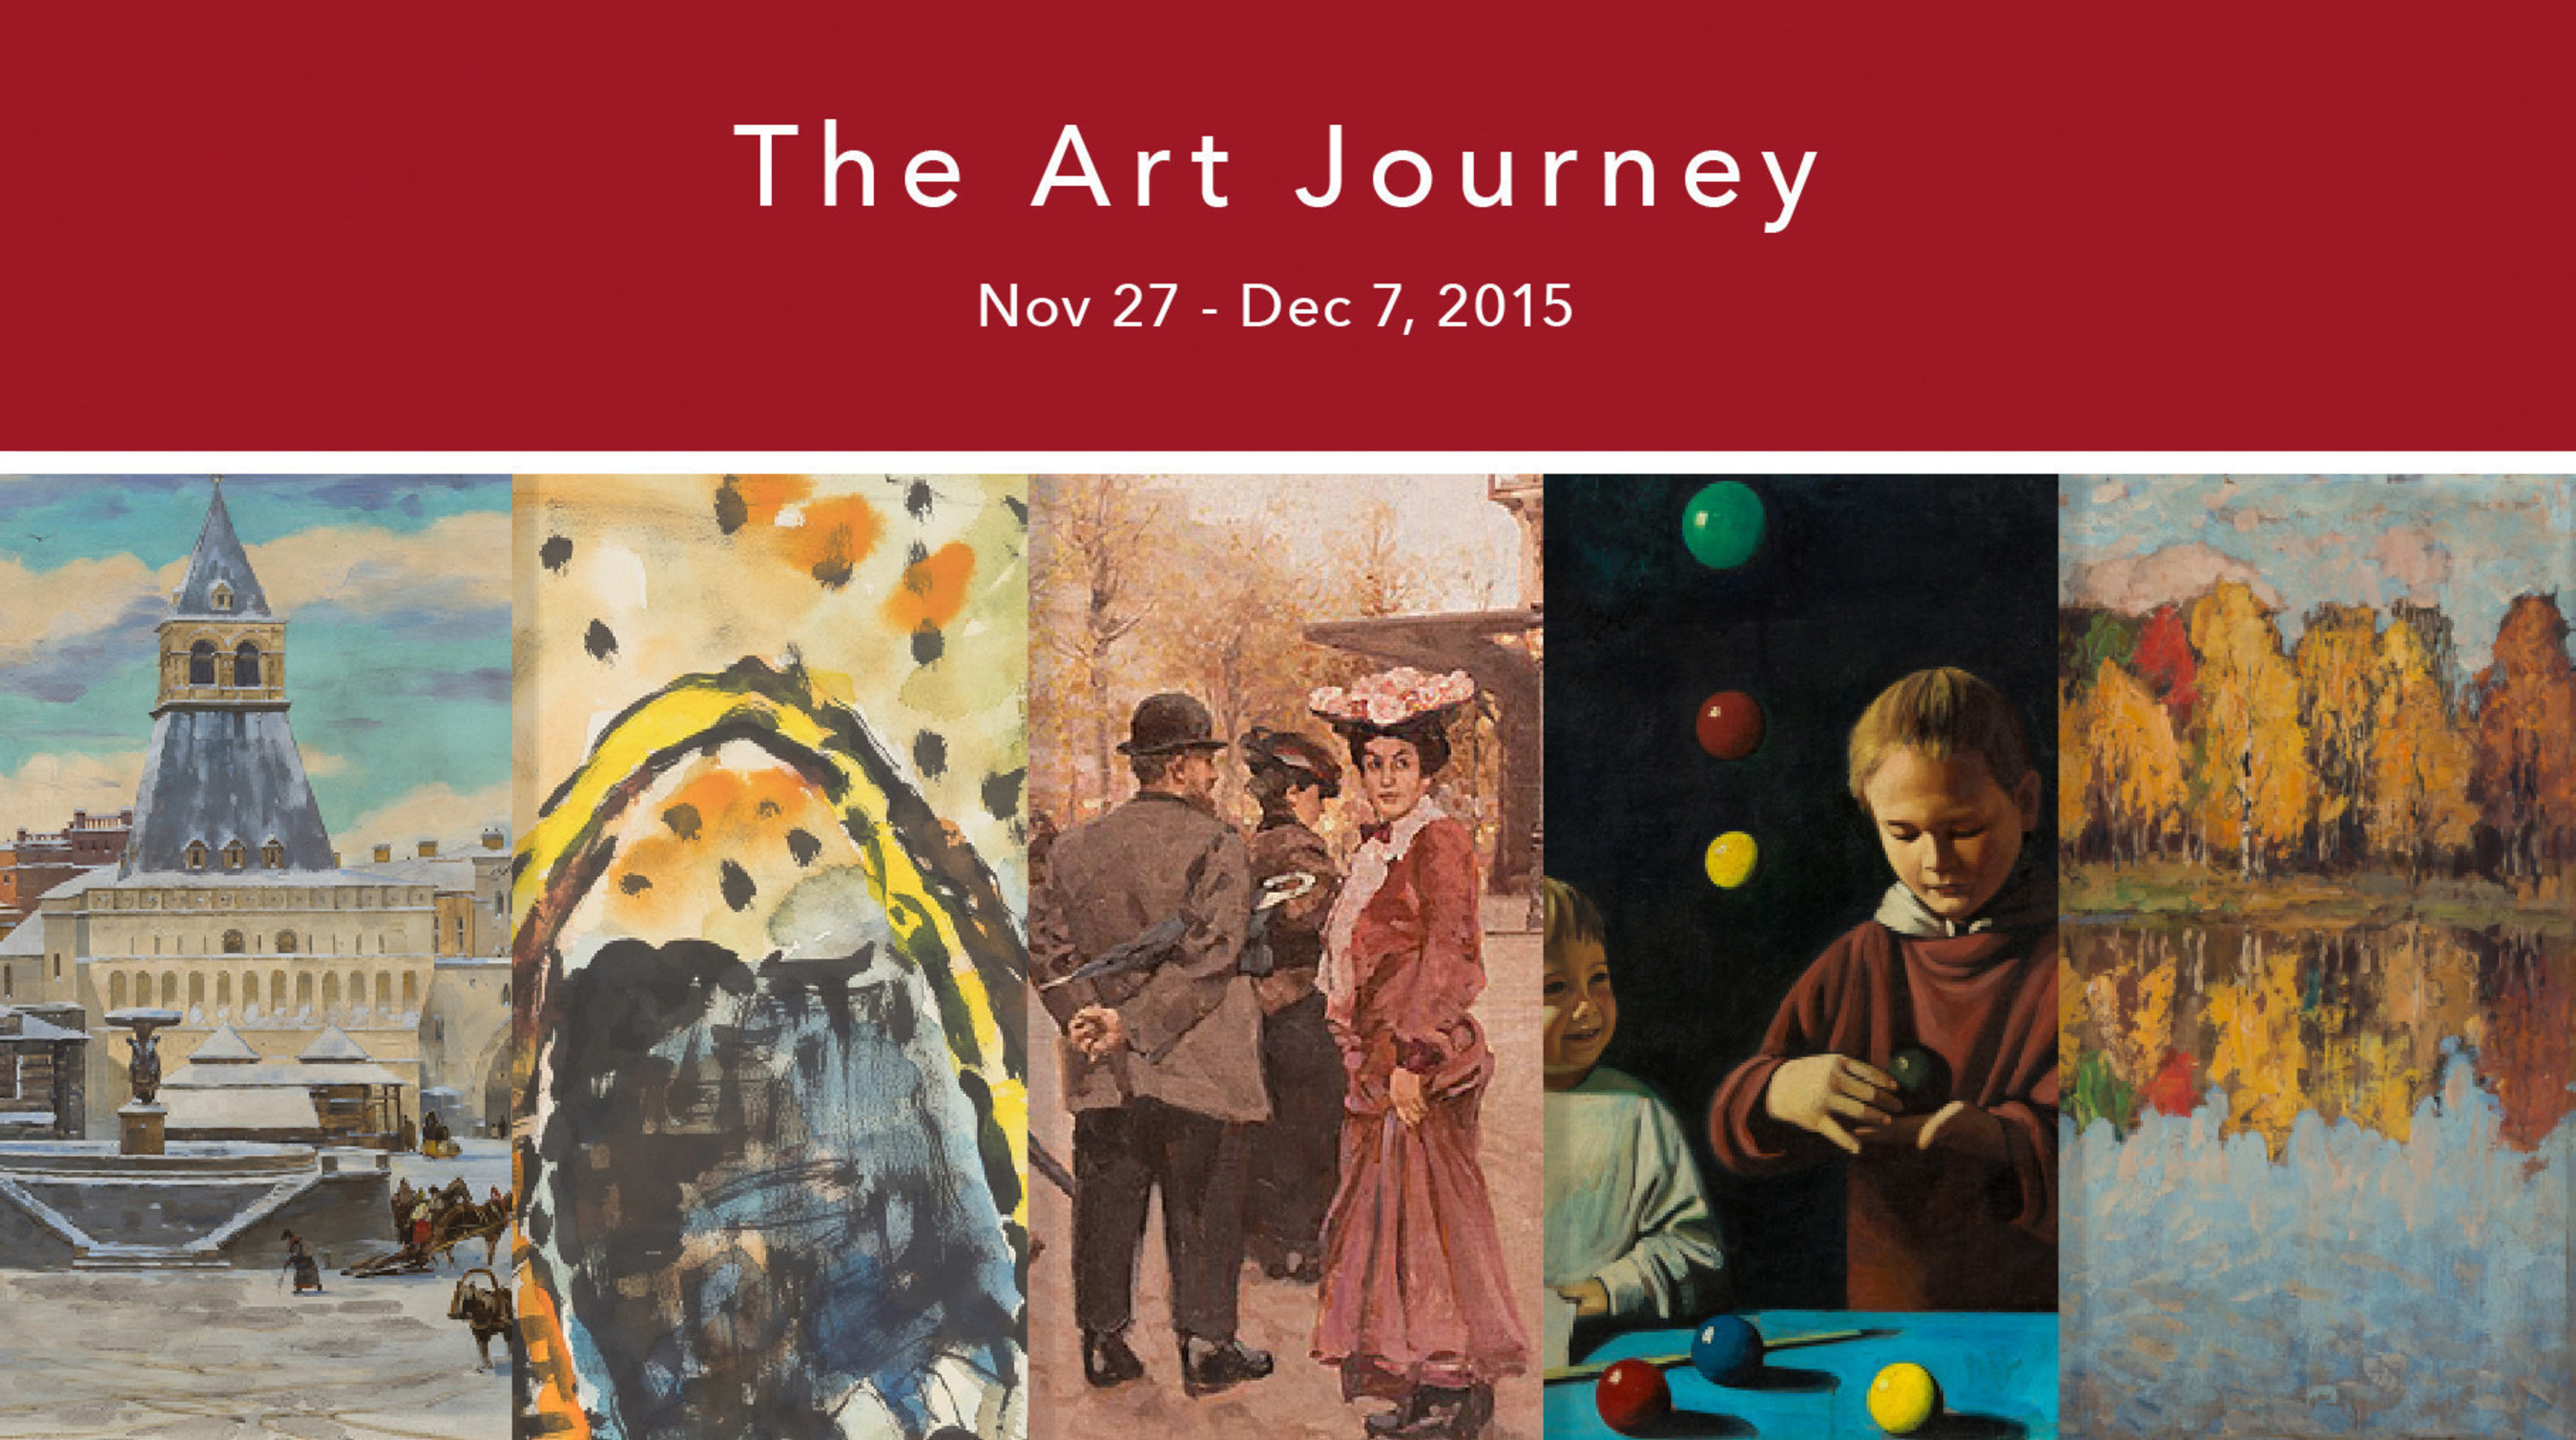 The Art Journey - 16 Auctions, 20 Countries, 2000 Artworks